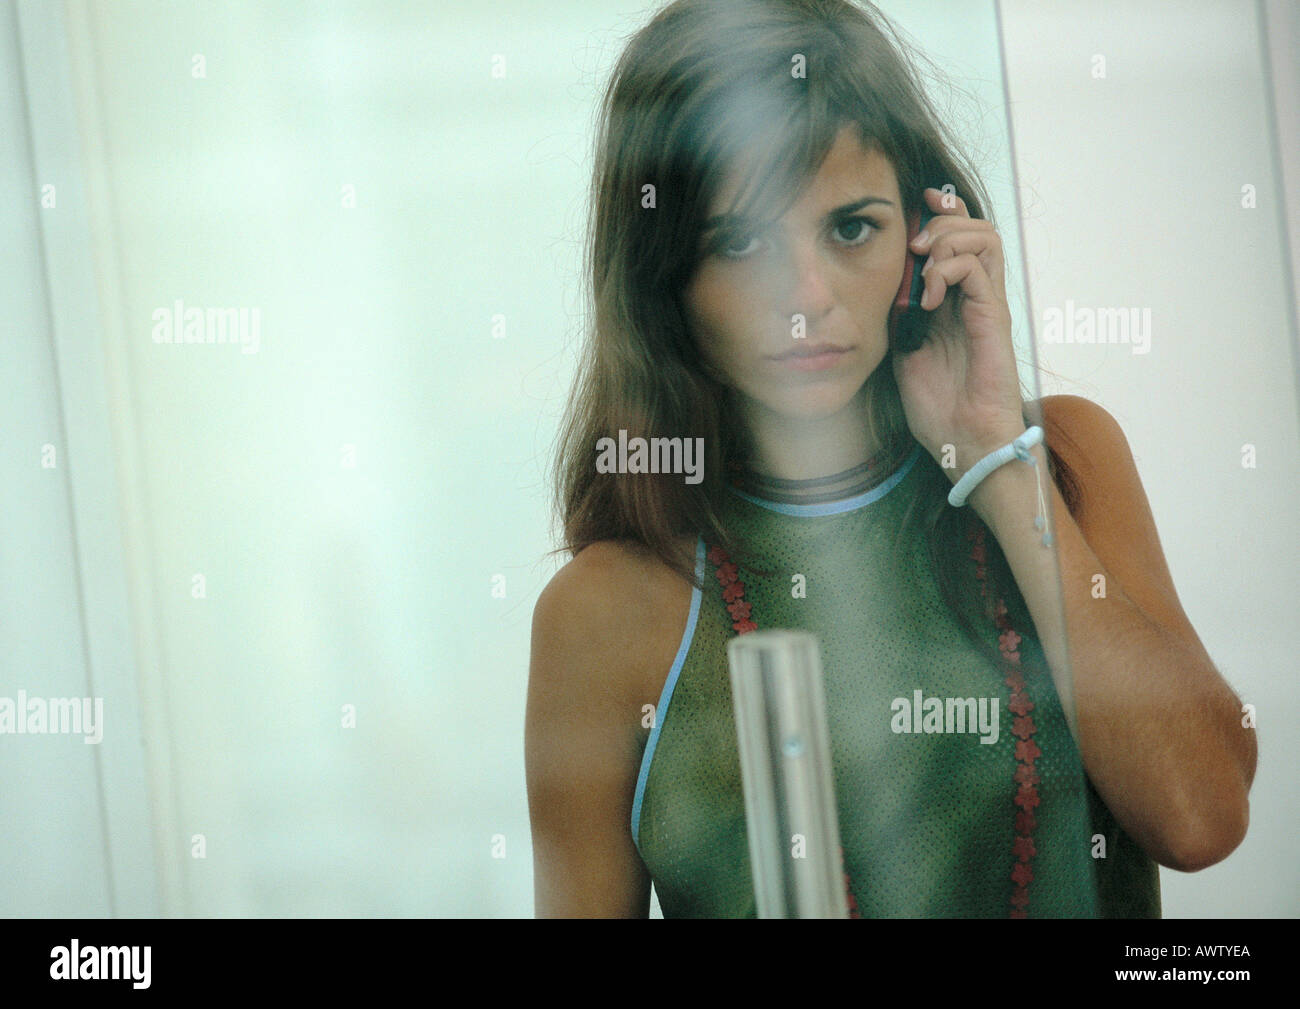 Woman on cell phone, view through glass - Stock Image